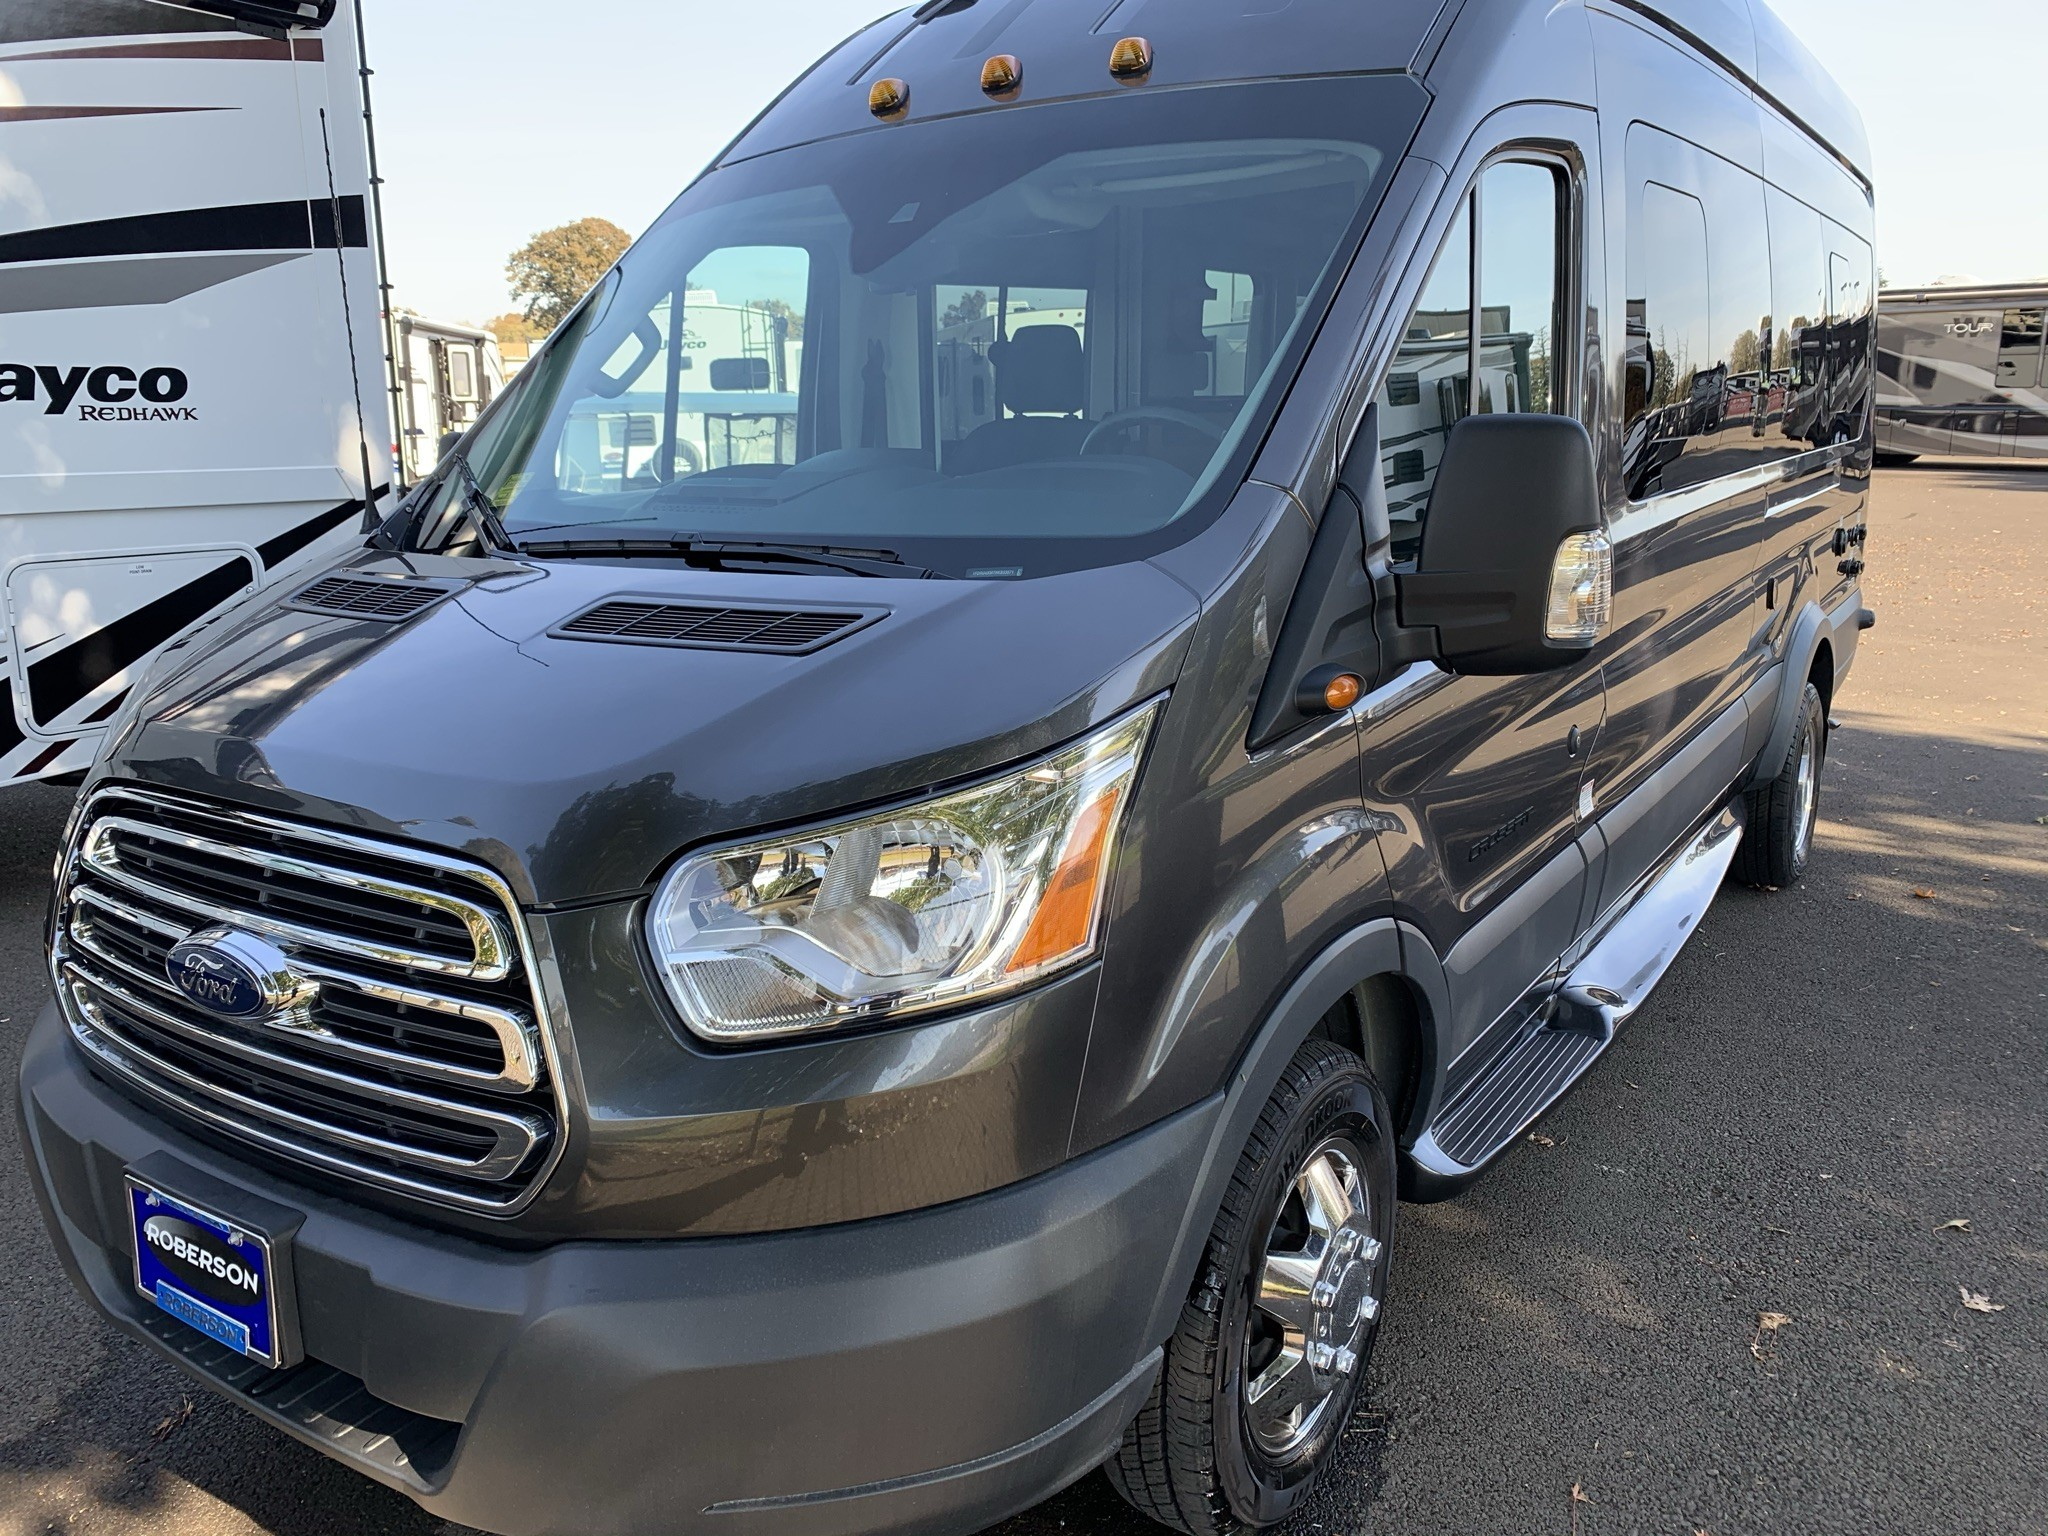 2018 coachmen crossfit 22c for sale in salem or rv trader rv trader